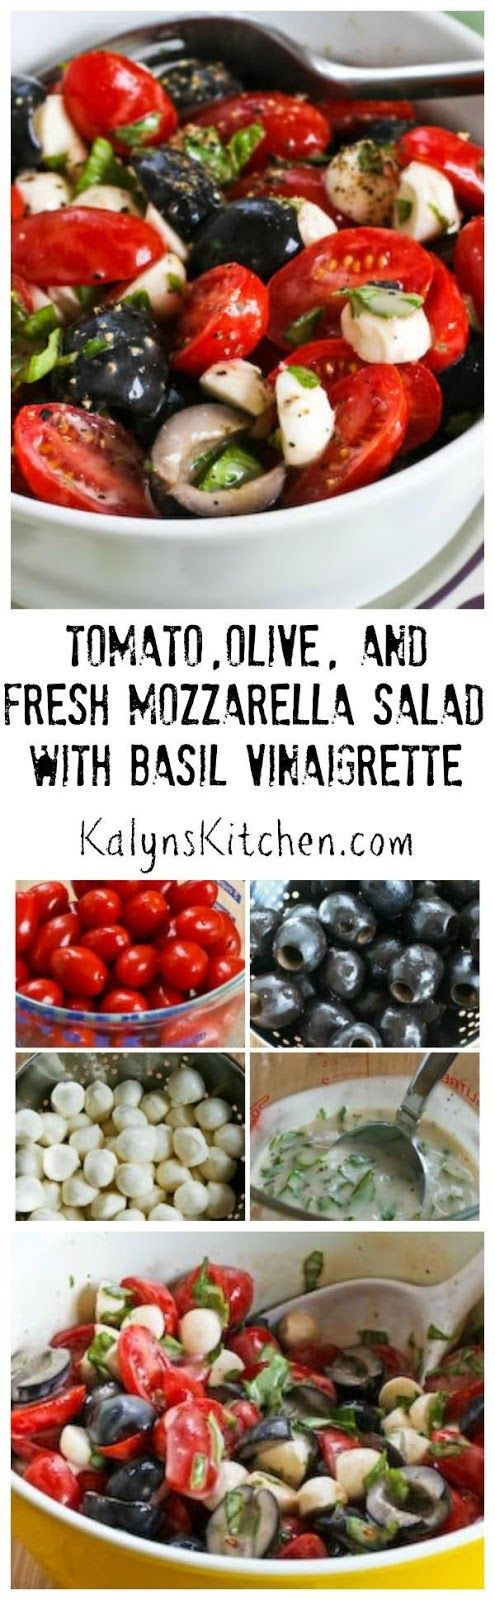 As soon as I can get fresh basil and good tomatoes I start making this Tomato, Olive, and Fresh Mozzarella Salad with Basil Vinaigrette, and I make it all summer long! [from KalynsKitchen.com]: